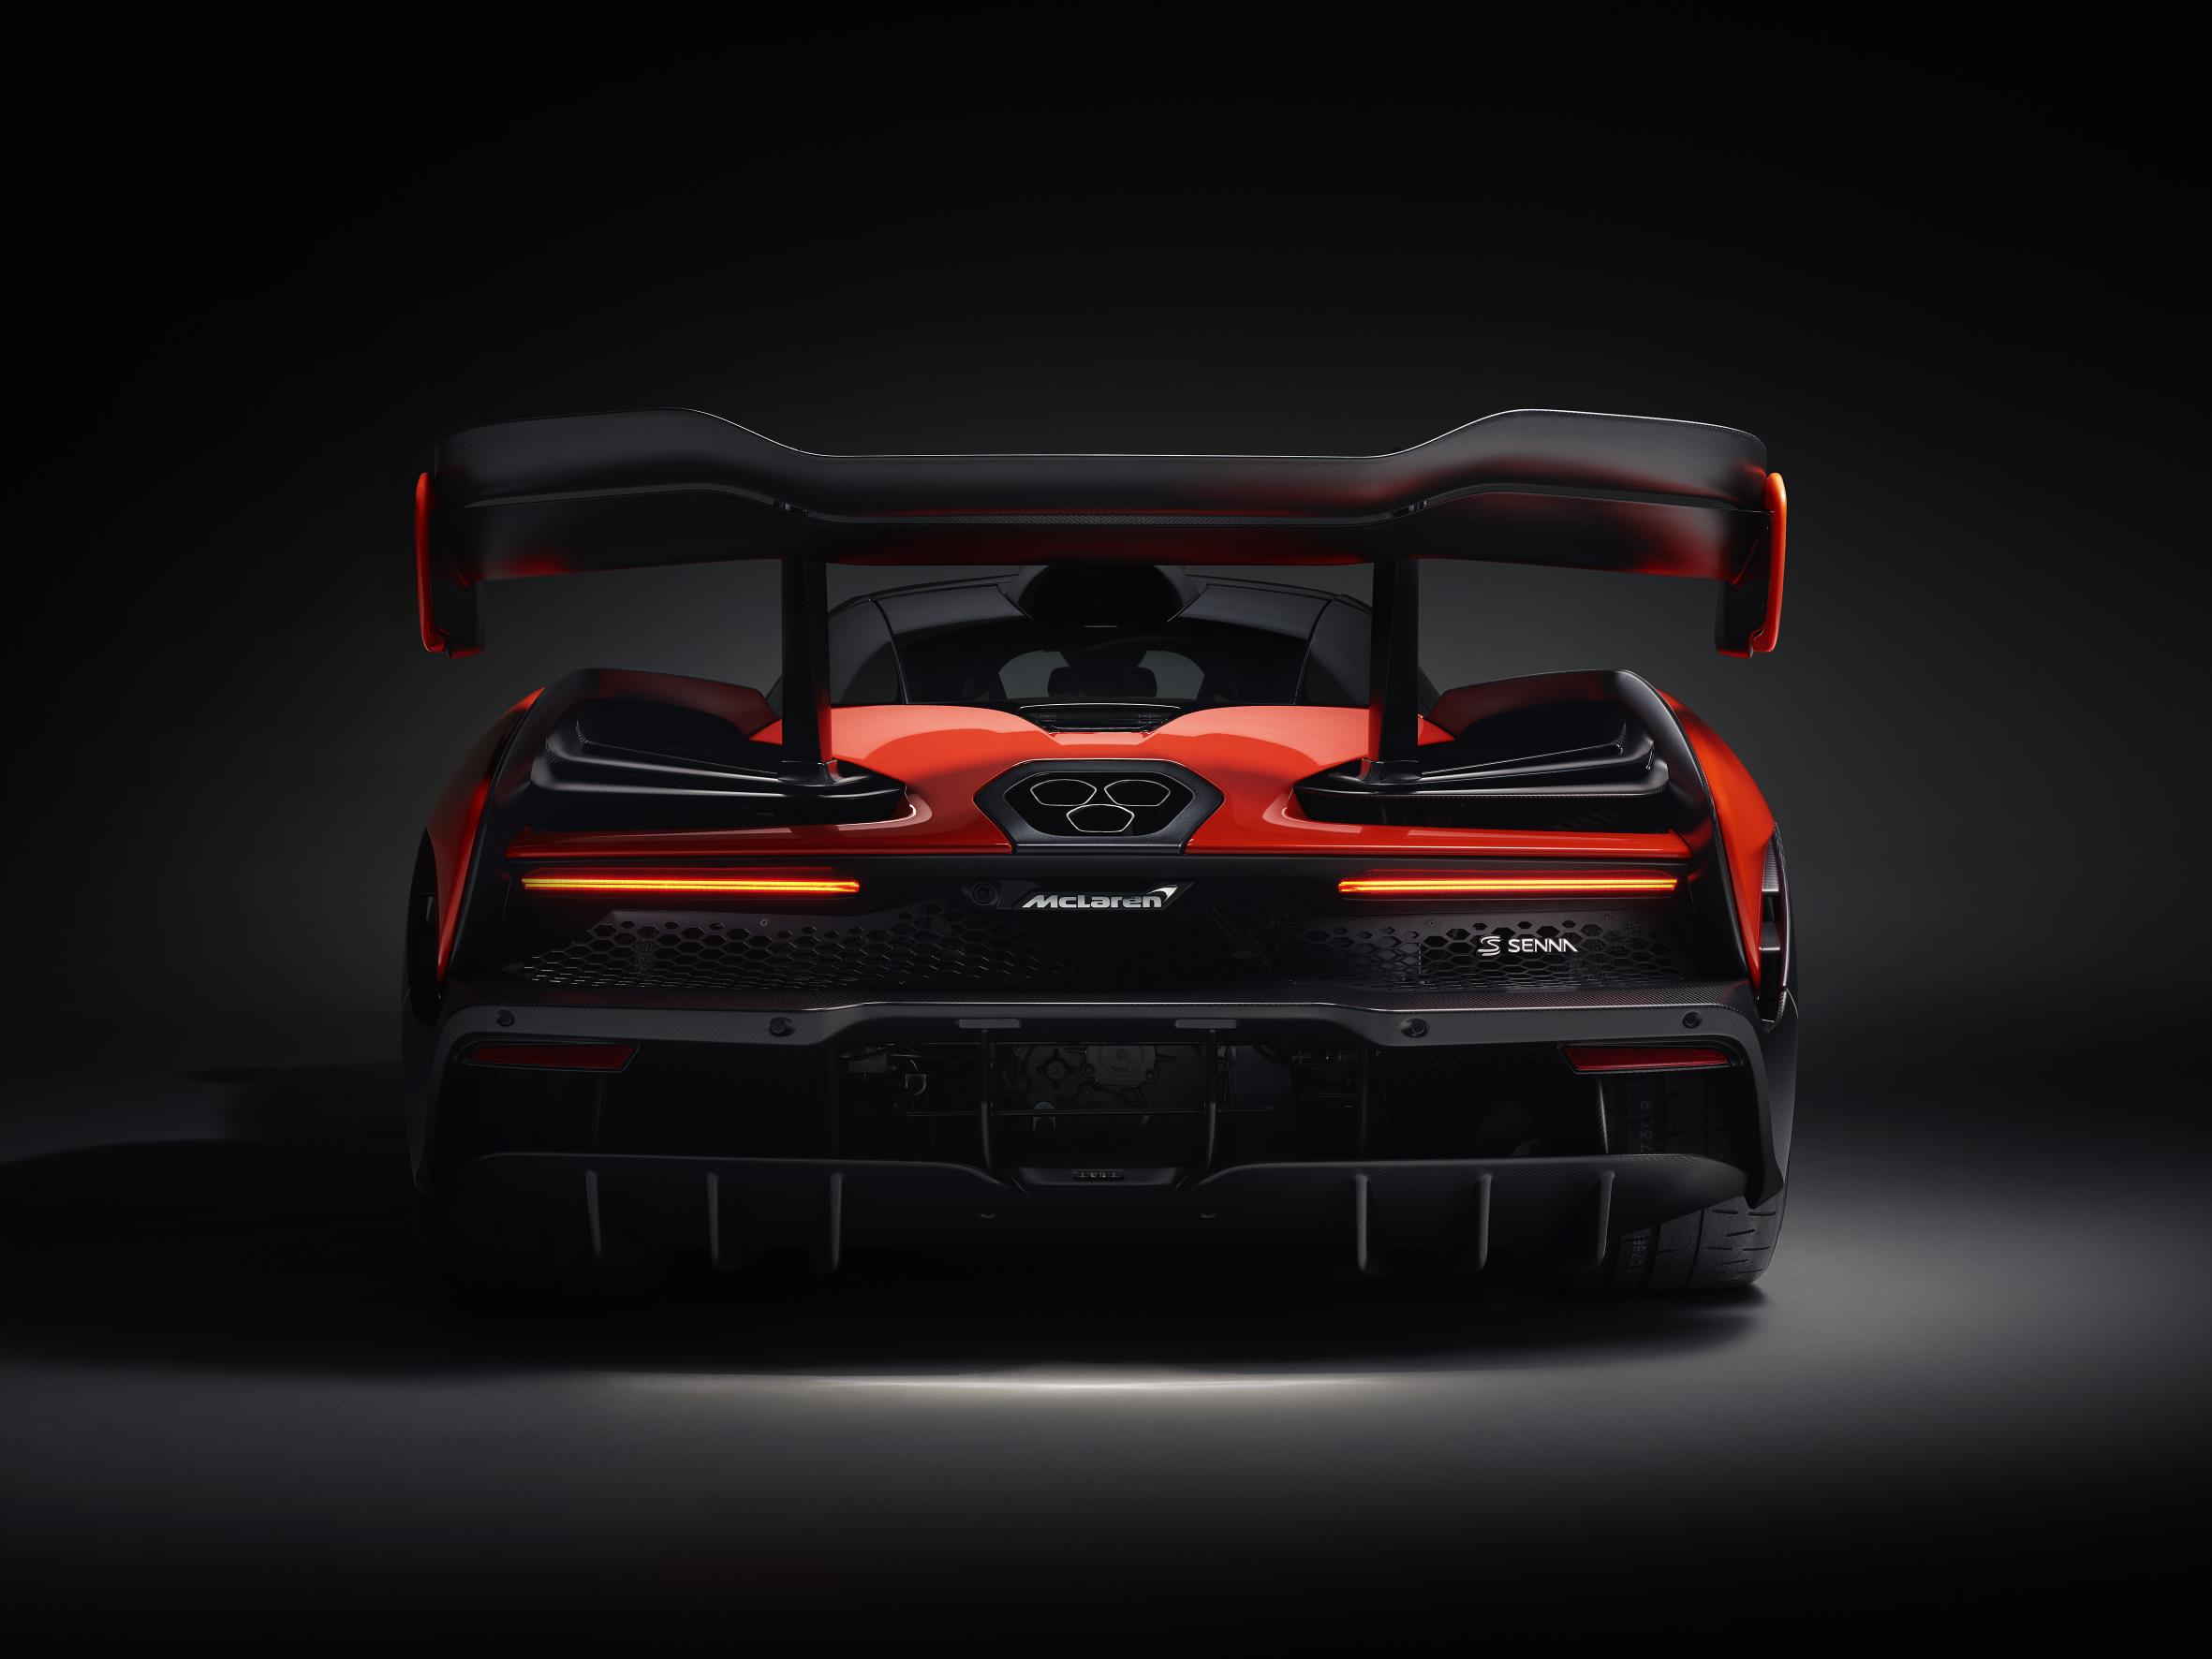 The McLaren Senna - the most extreme McLaren ever? McLaren Automotive acheived another year of sales records in 2017.